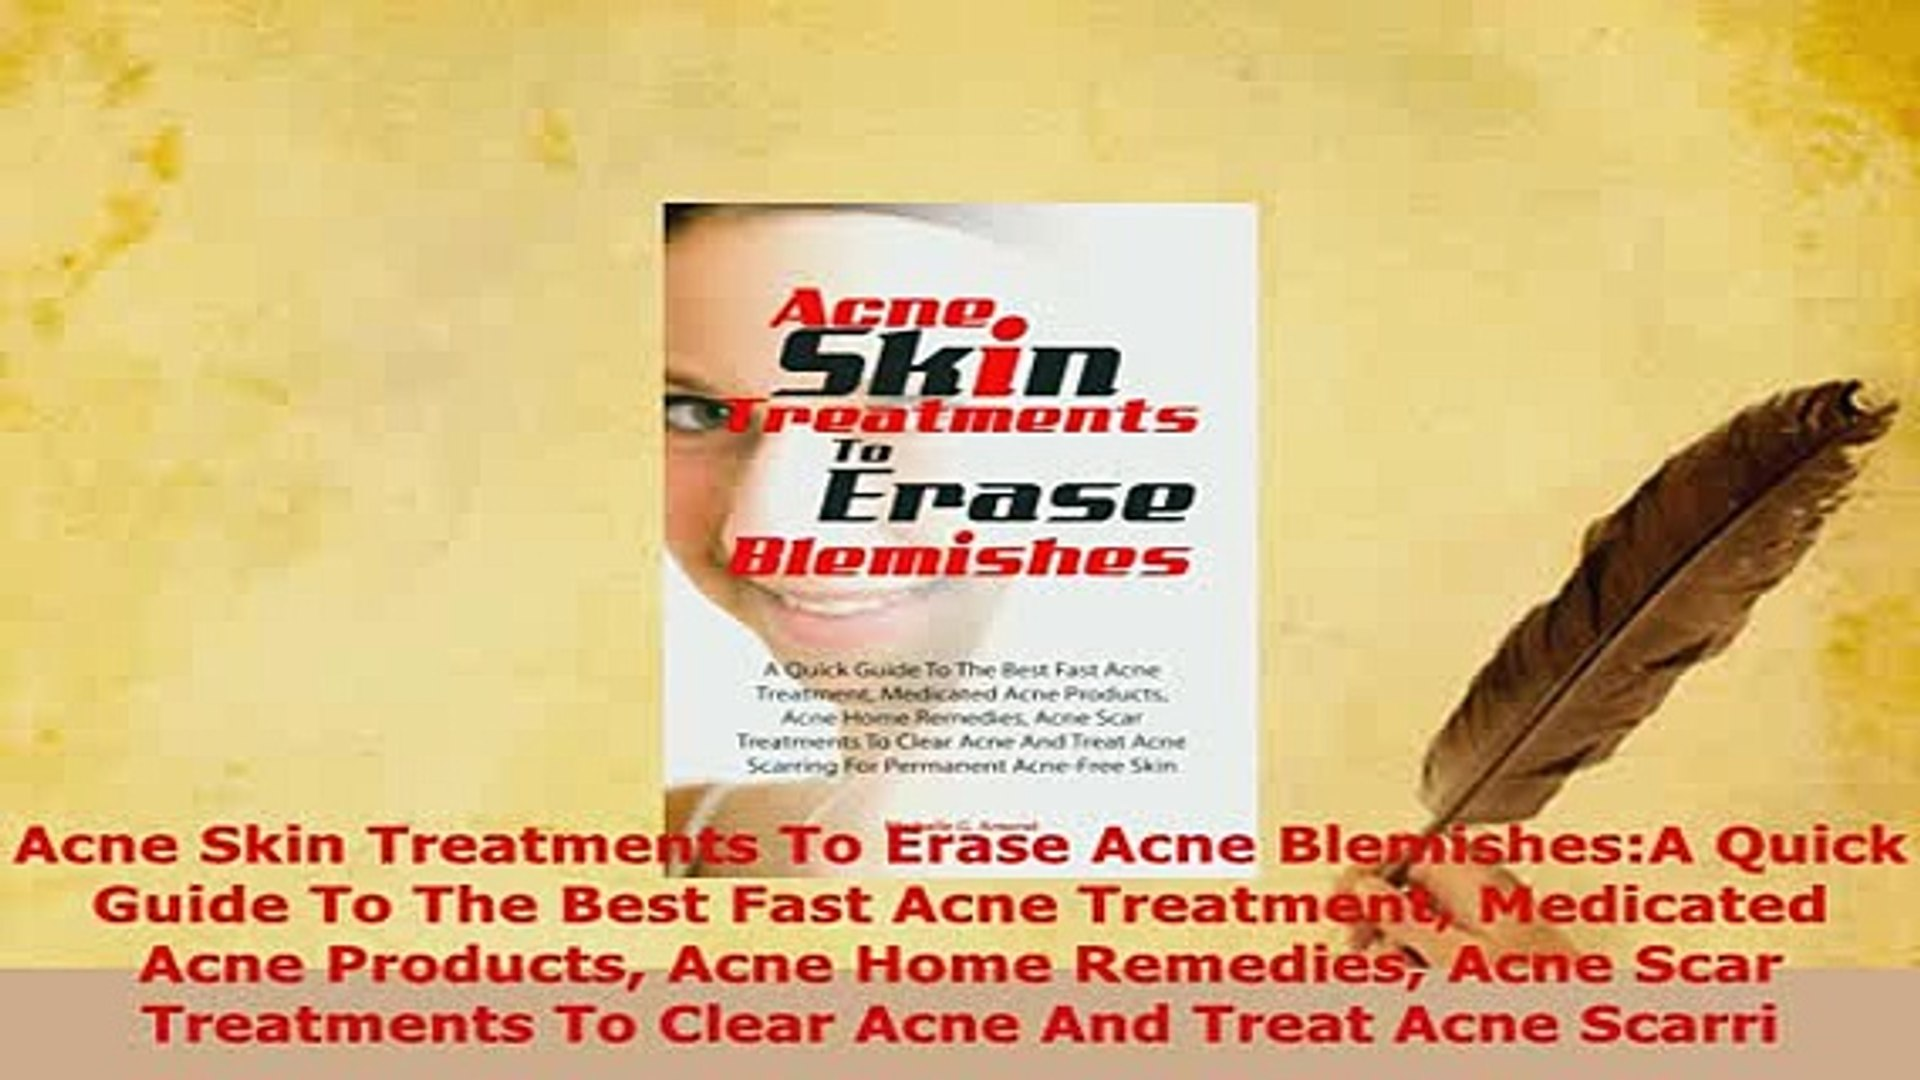 Pdf Acne Skin Treatments To Erase Acne Blemishesa Quick Guide To